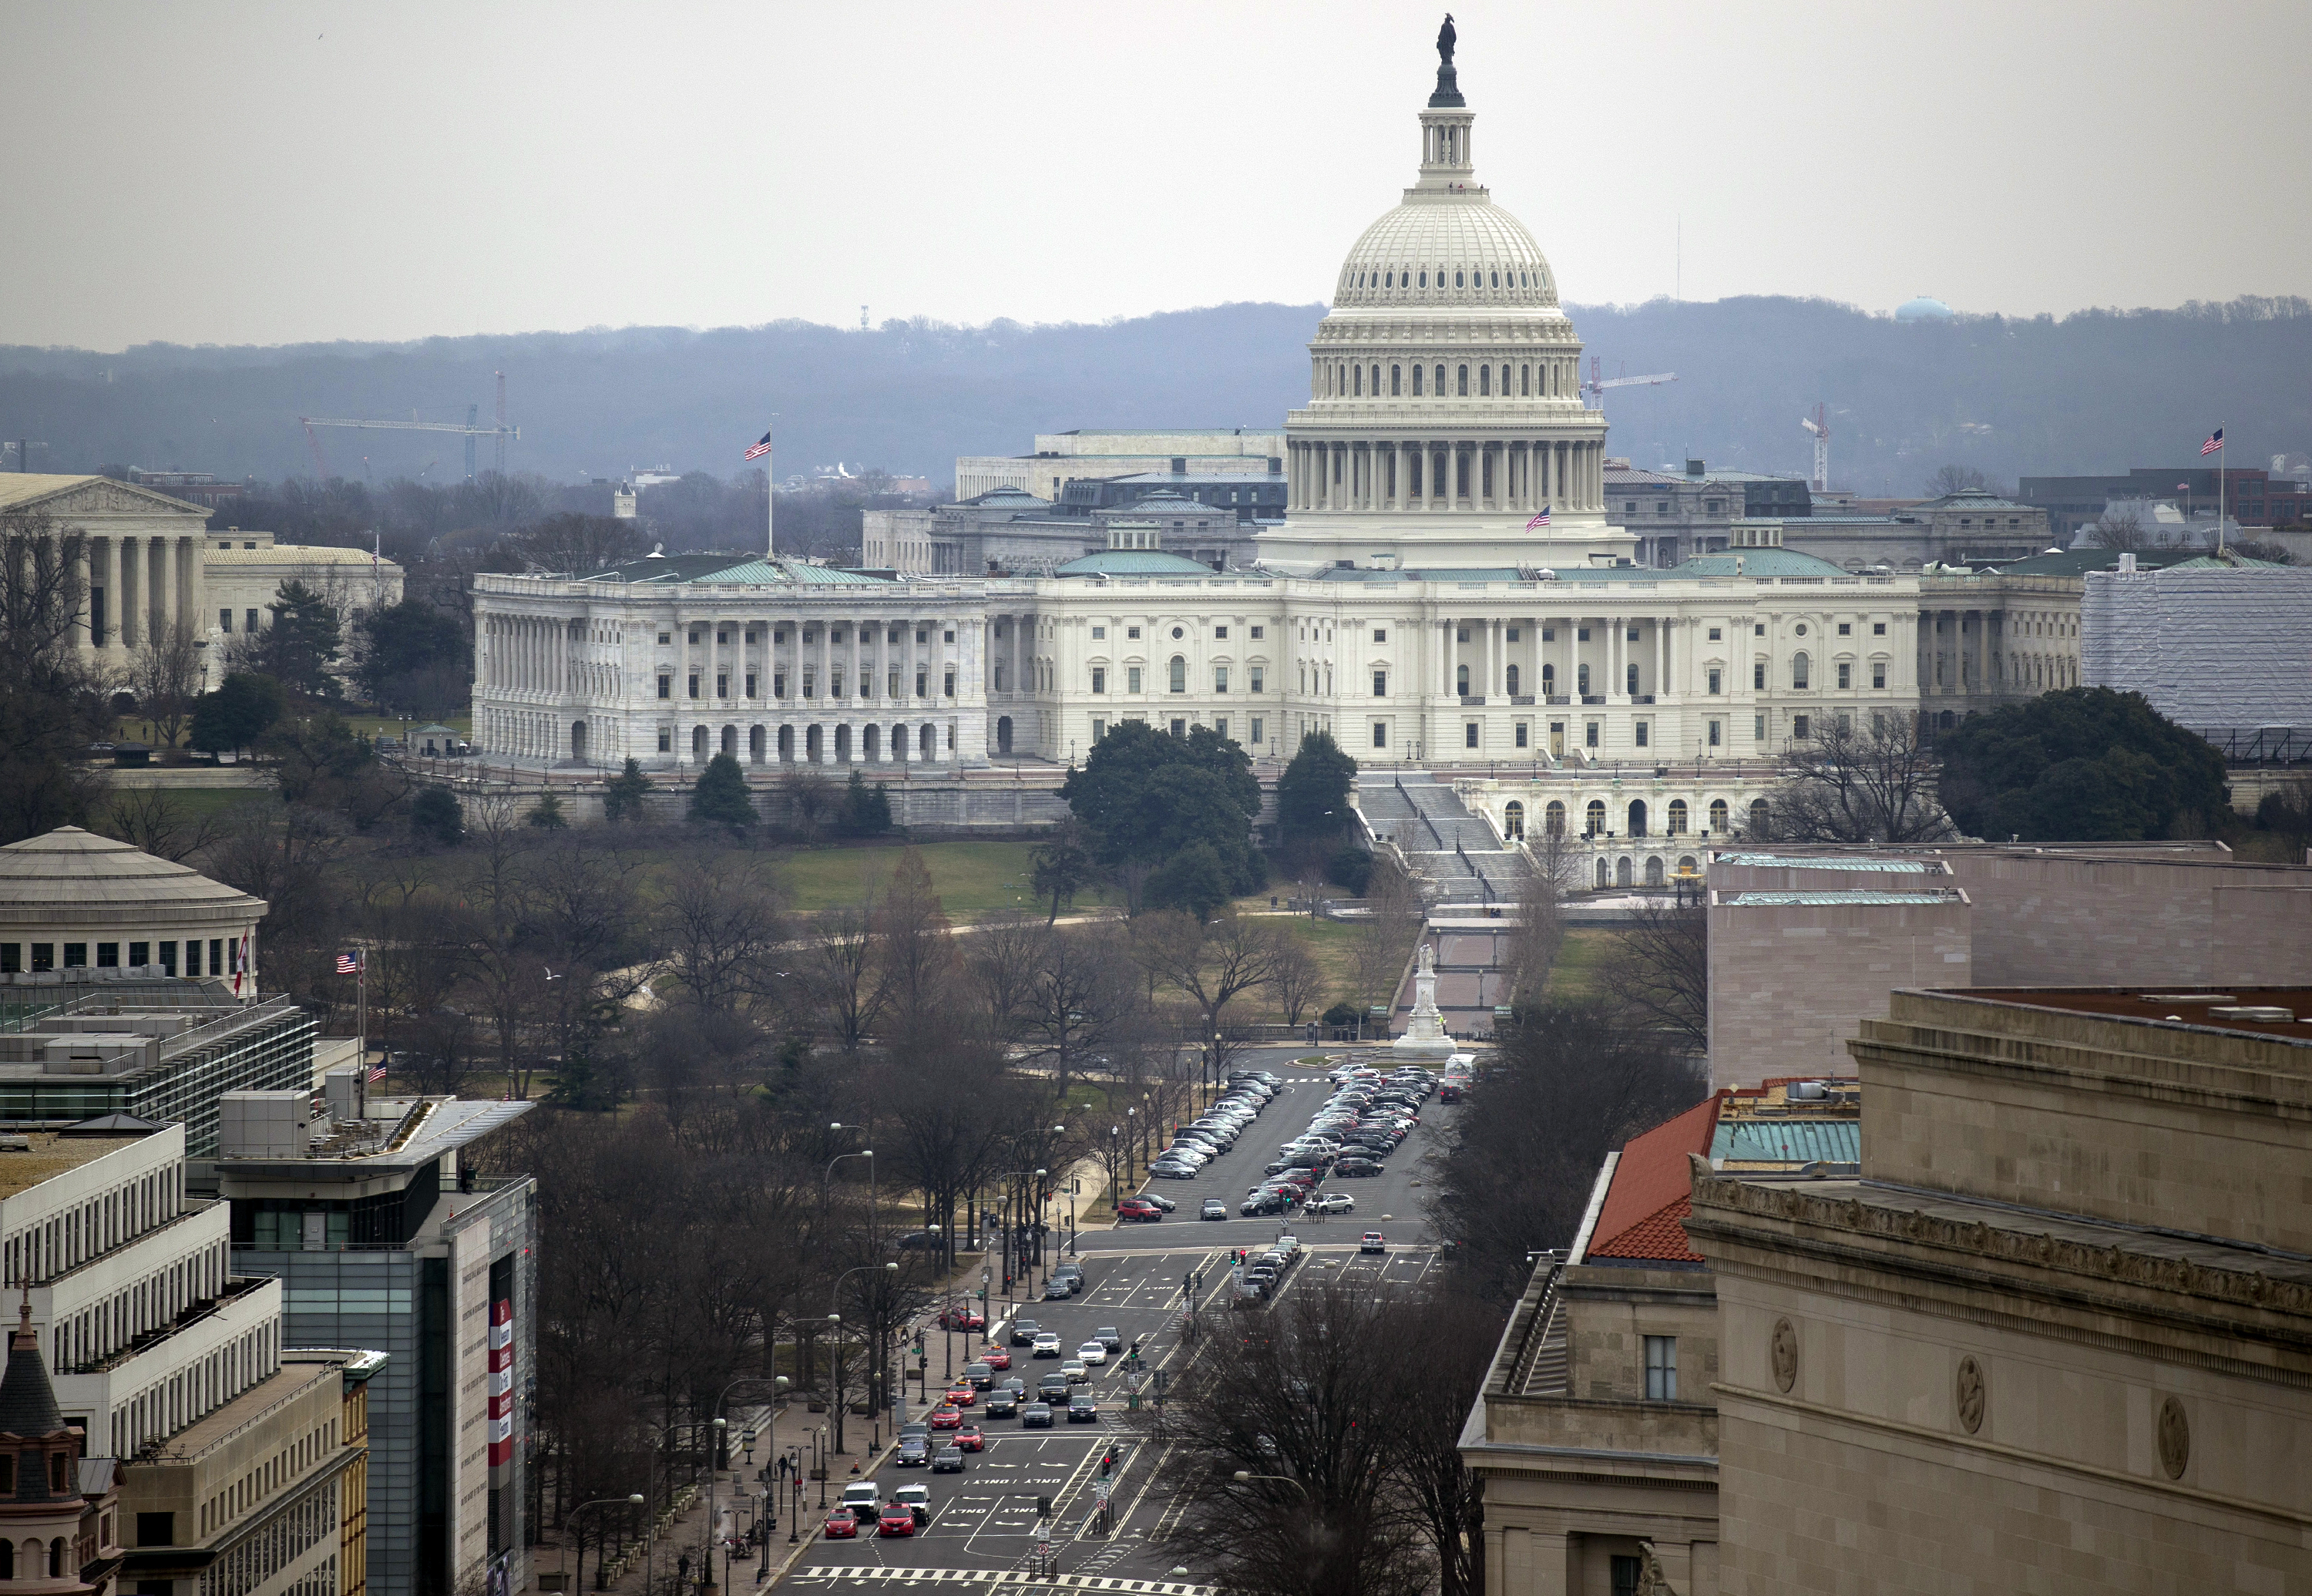 Pennsylvania Avenue leads to the U.S. Capitol as seen from the Old Post Office Pavilion Clock Tower on Friday, Jan. 4, 2019 in Washington.